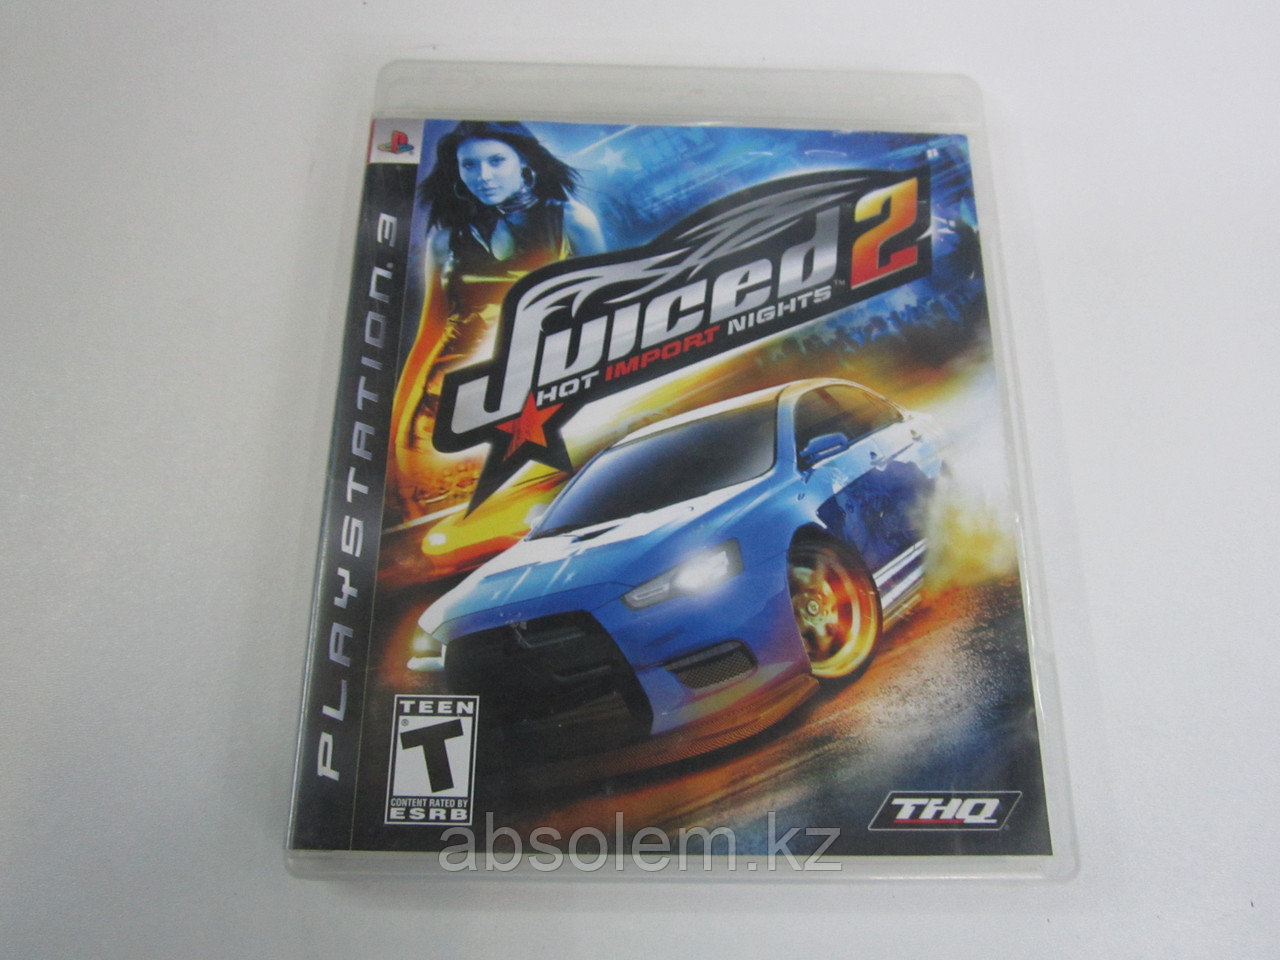 Игра для PS3 Juiced 2 Hot Import Night (вскрытый), фото 1